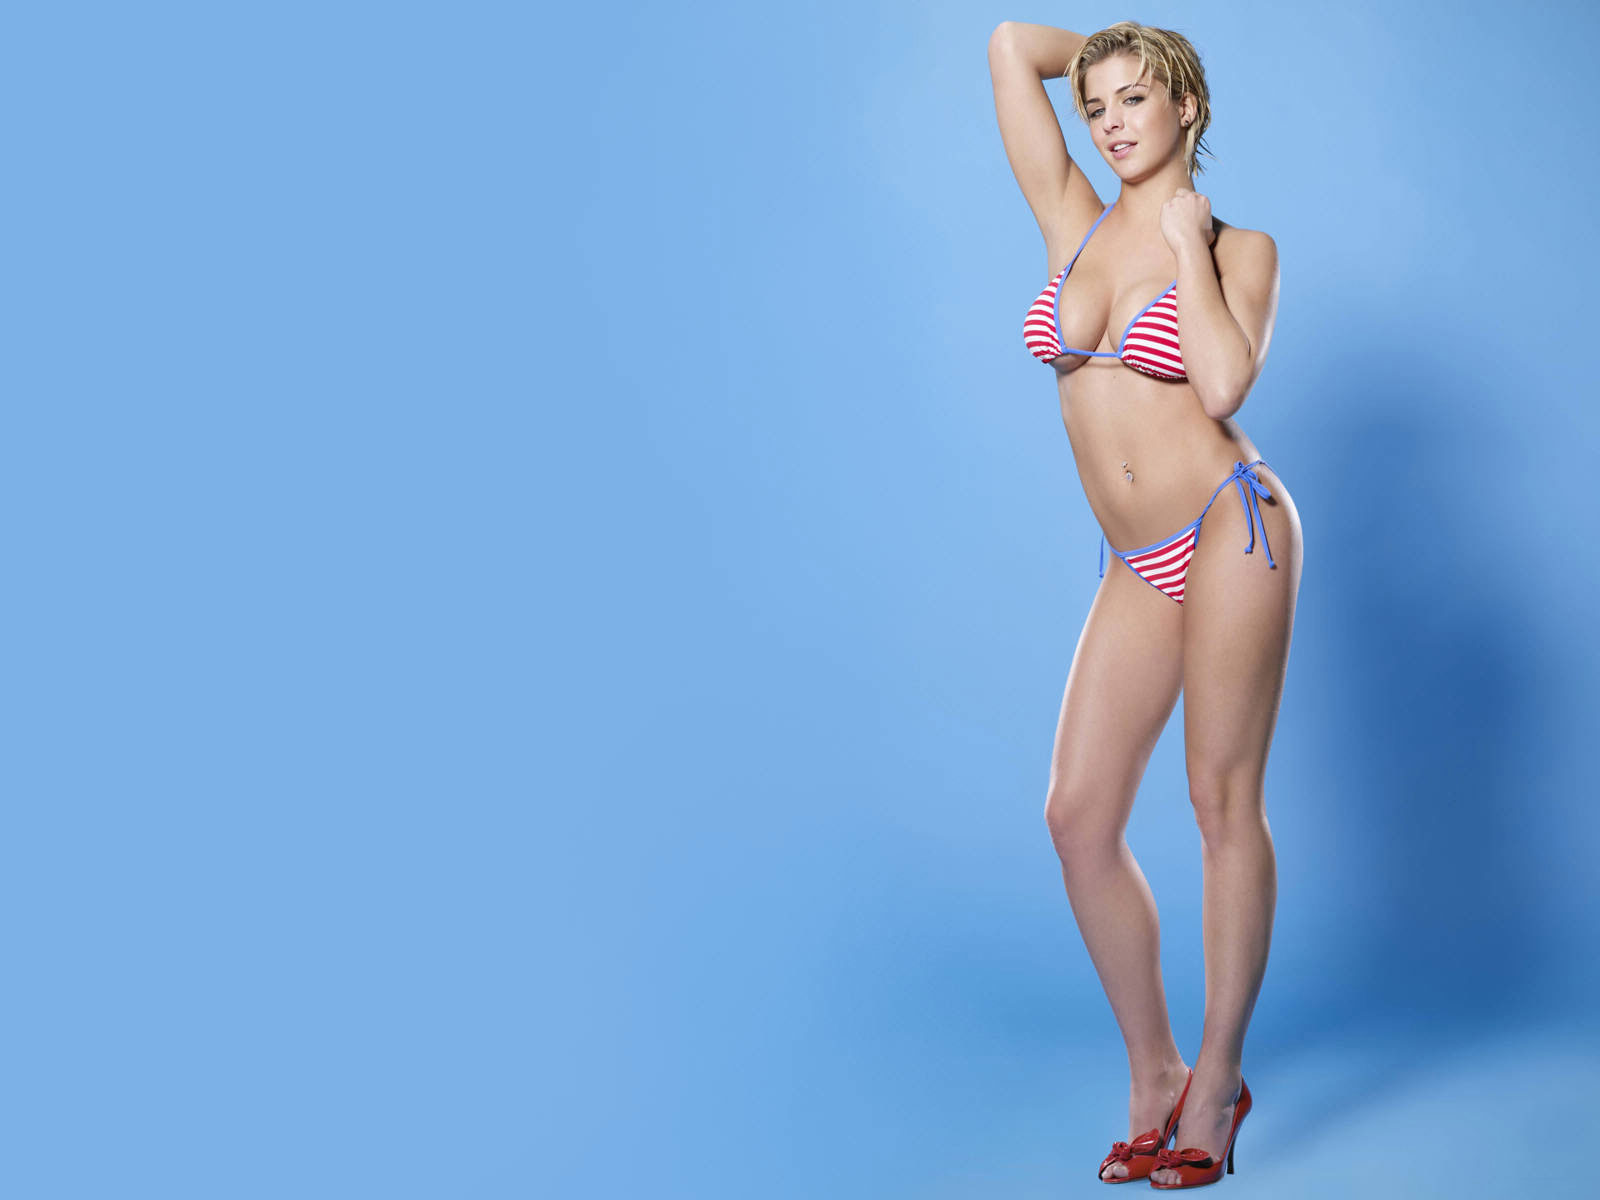 57 Gemma Atkinson HD Wallpapers  Background Images